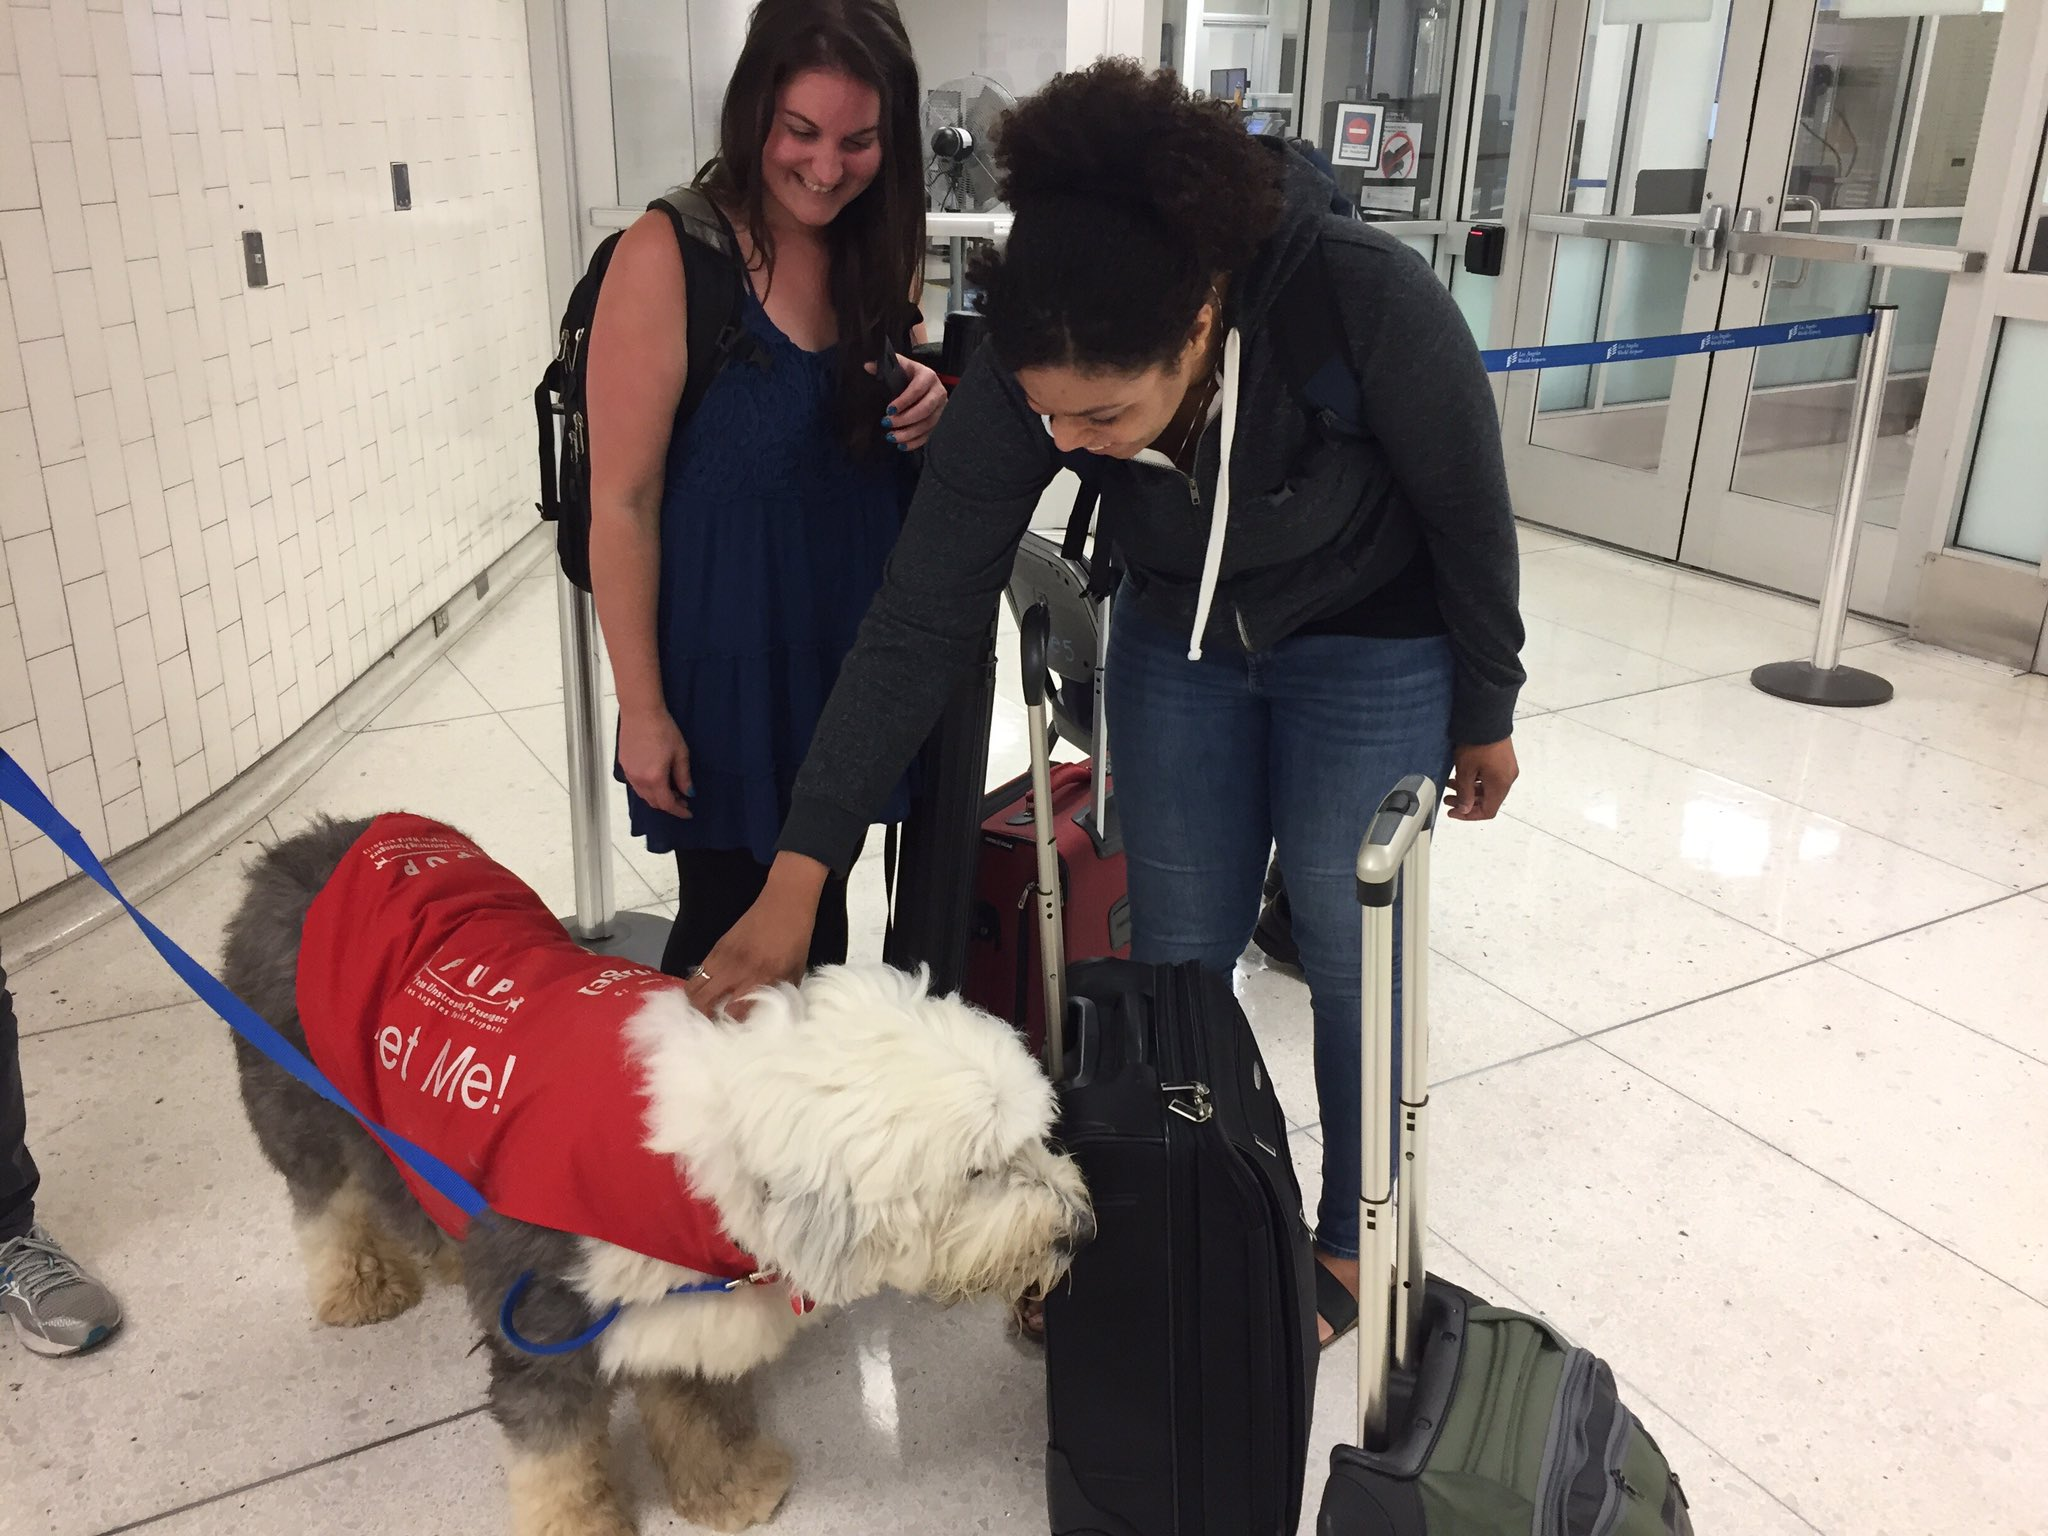 .@ward_lab getting de-stressed 2ith Nigel the therapy dog ahead of #worm17 @GuinevereAshley @Iam_Londen @GeneticsGSA https://t.co/oy38XXyOMX